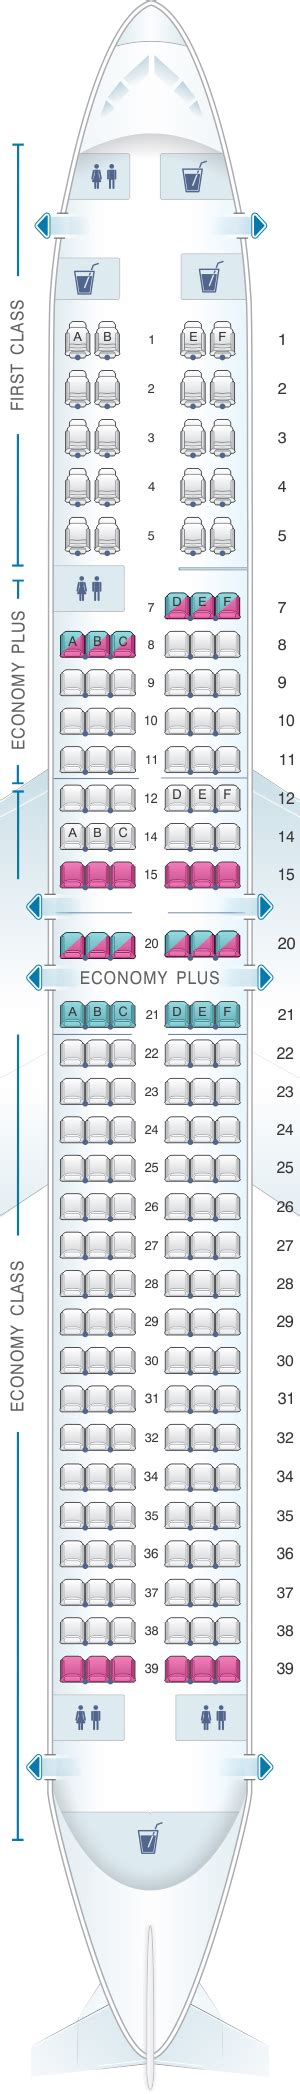 United Check In Baggage by Seat Map United Airlines Boeing B737 900 Version 3